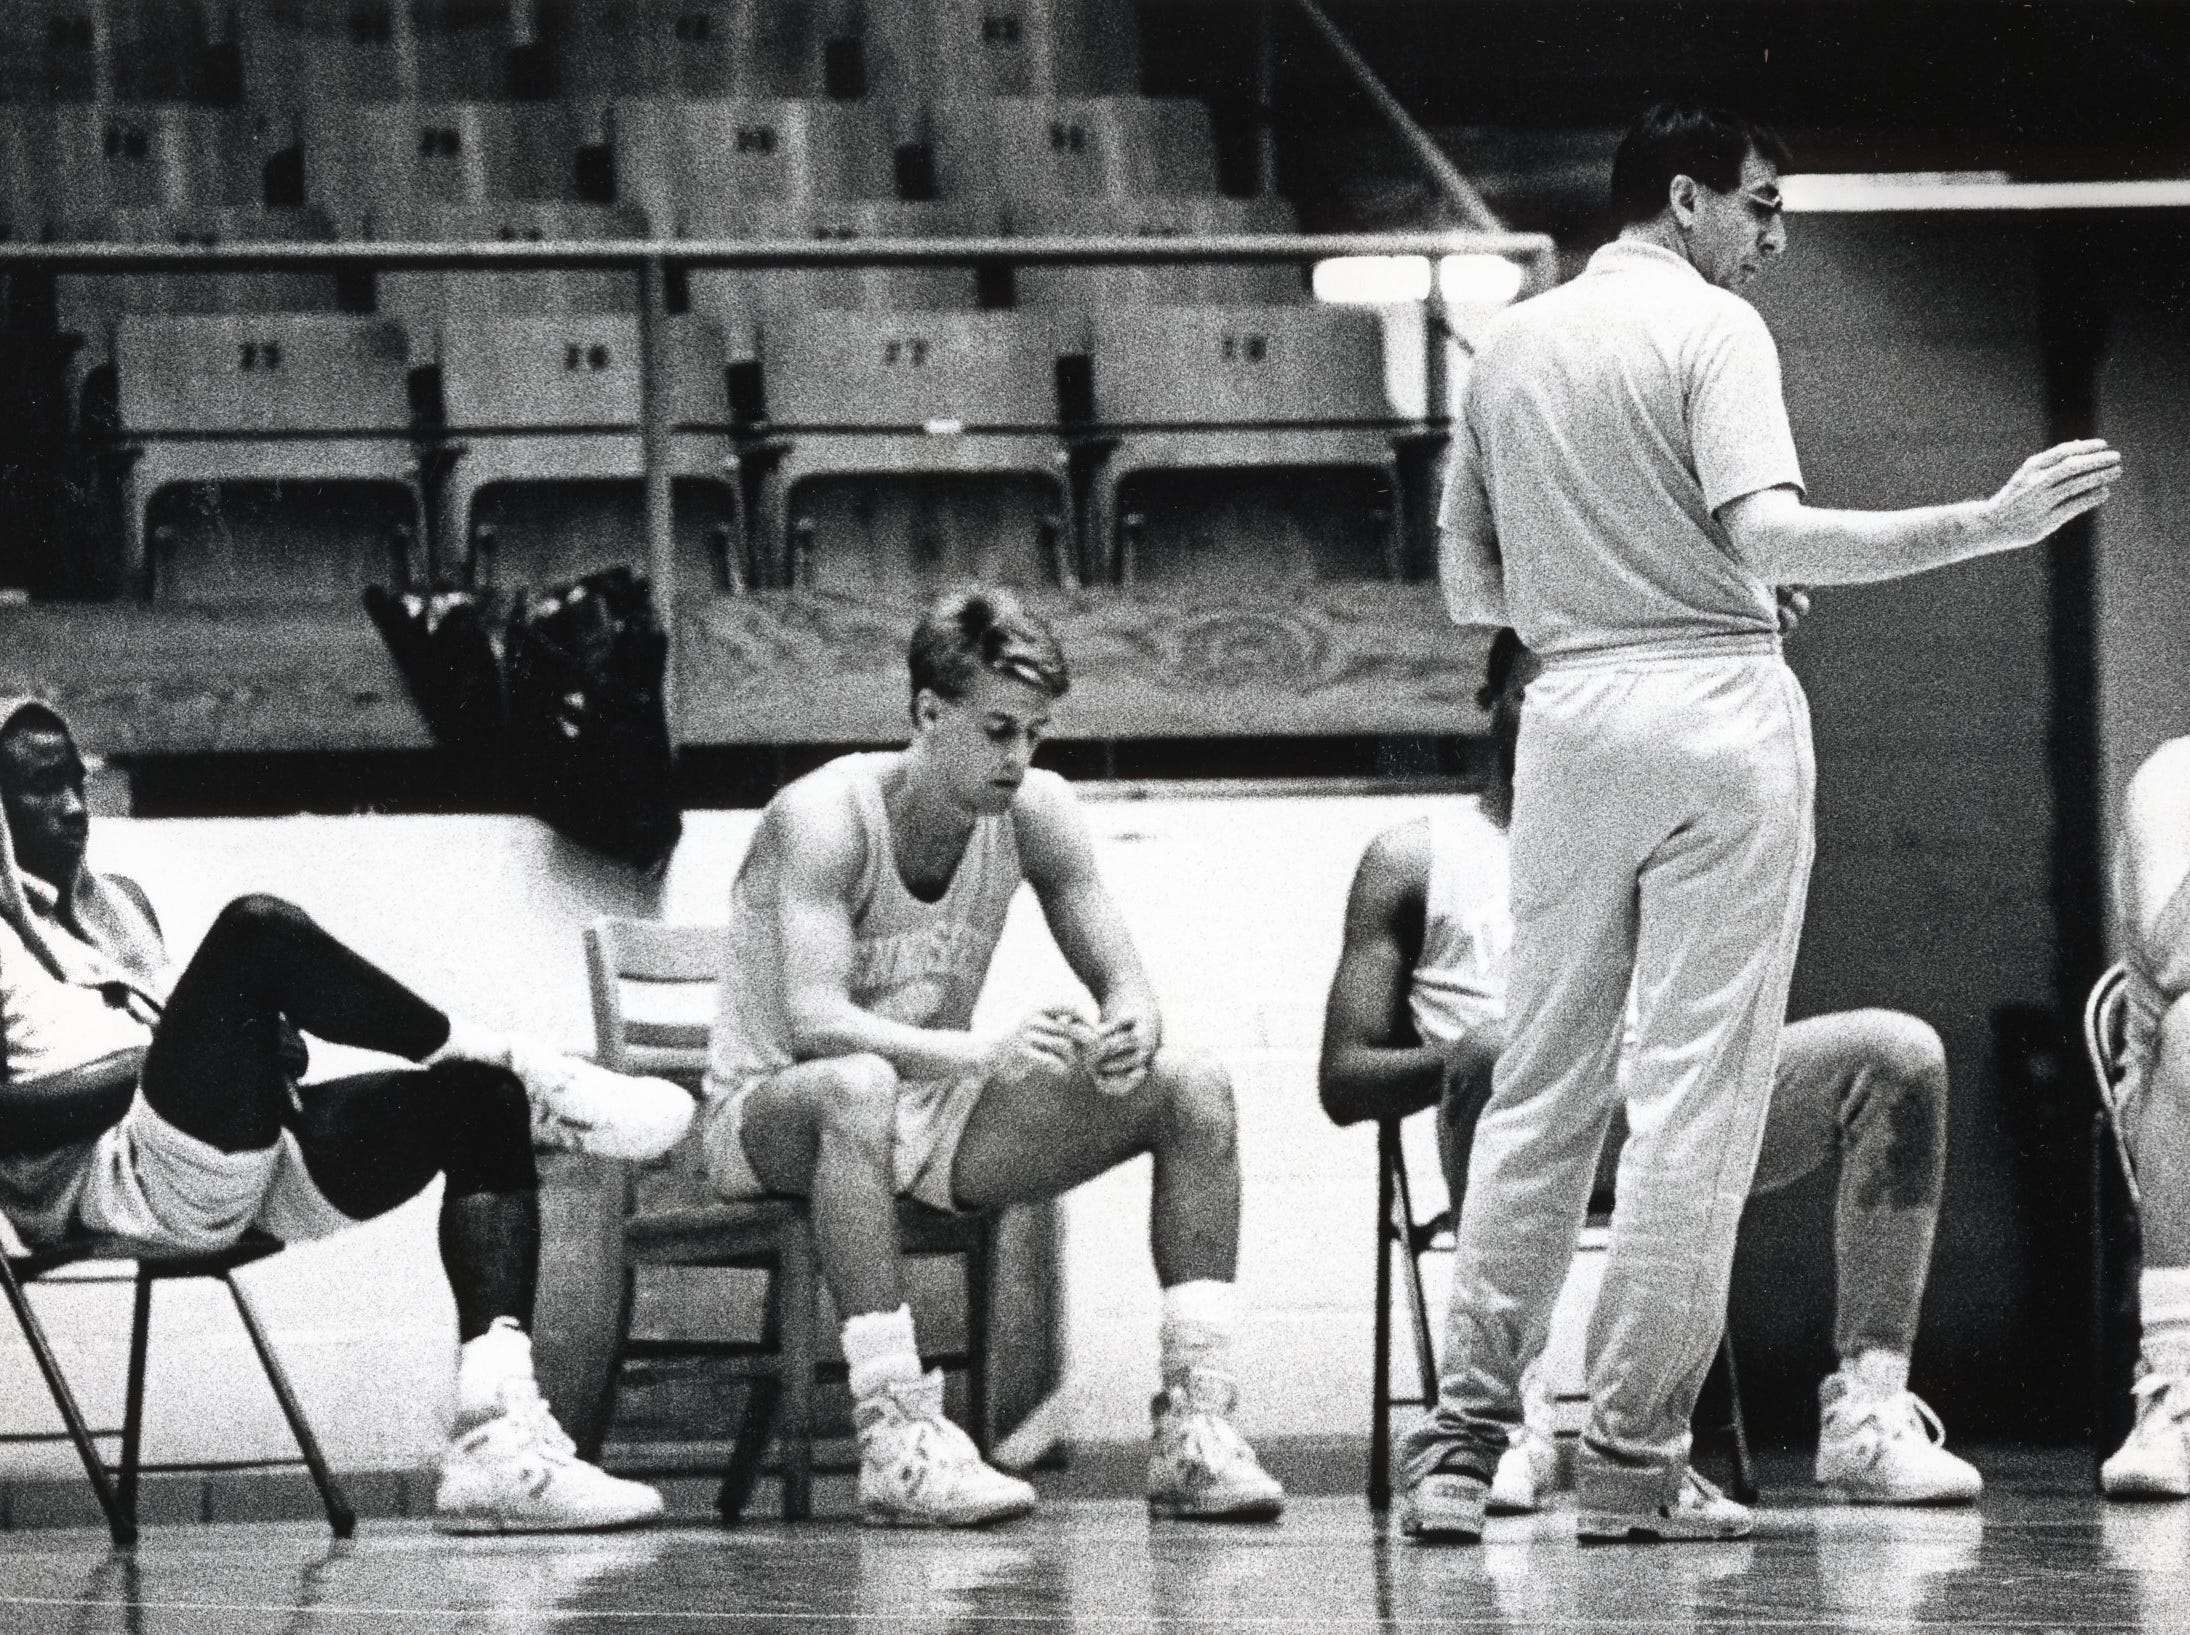 Tennessee coach Don DeVoe coaches the team in March 1989.